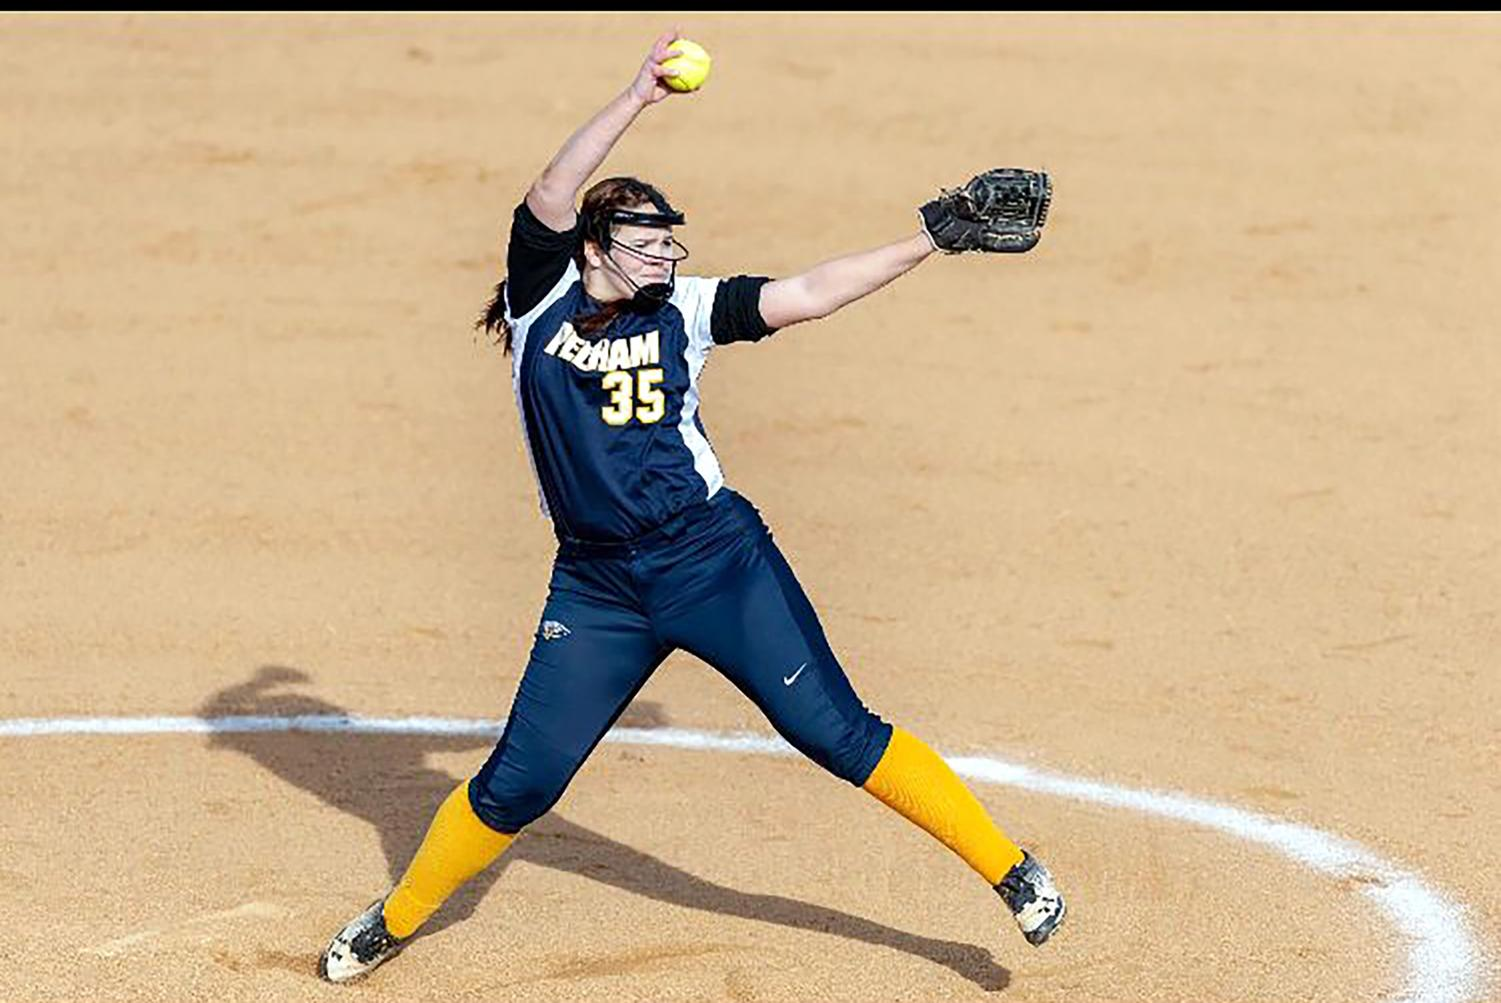 Senior KP Boggs winds up for a big pitch on the softball mound.